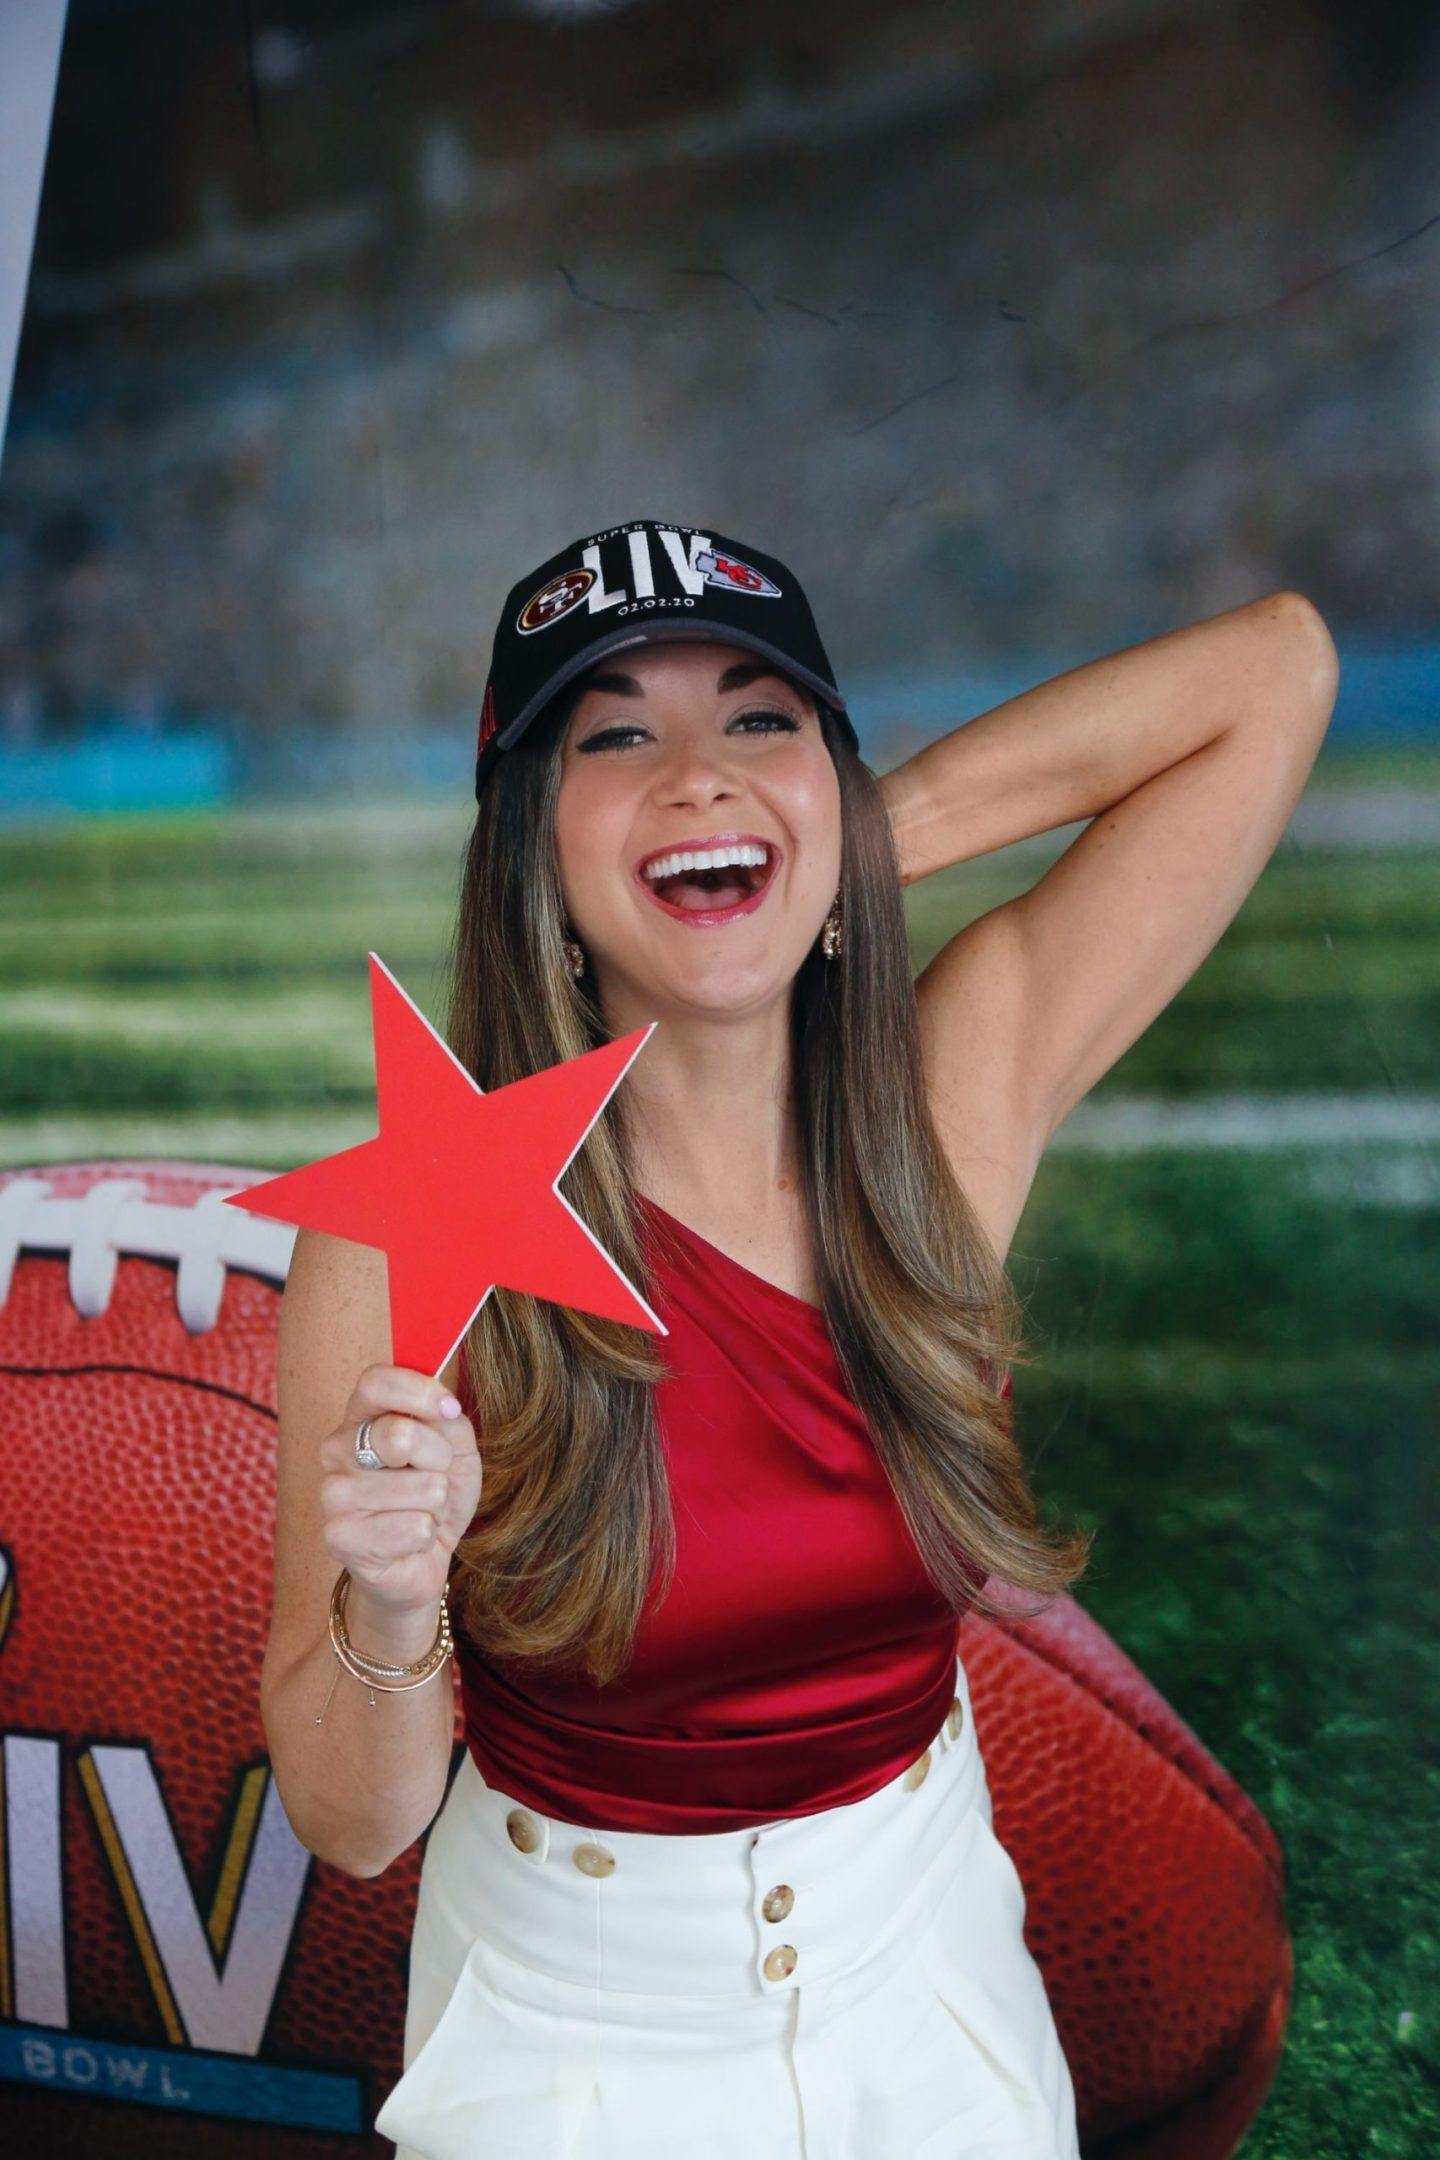 All Star Picks for Super Bowl LIV Events and Watch Parties